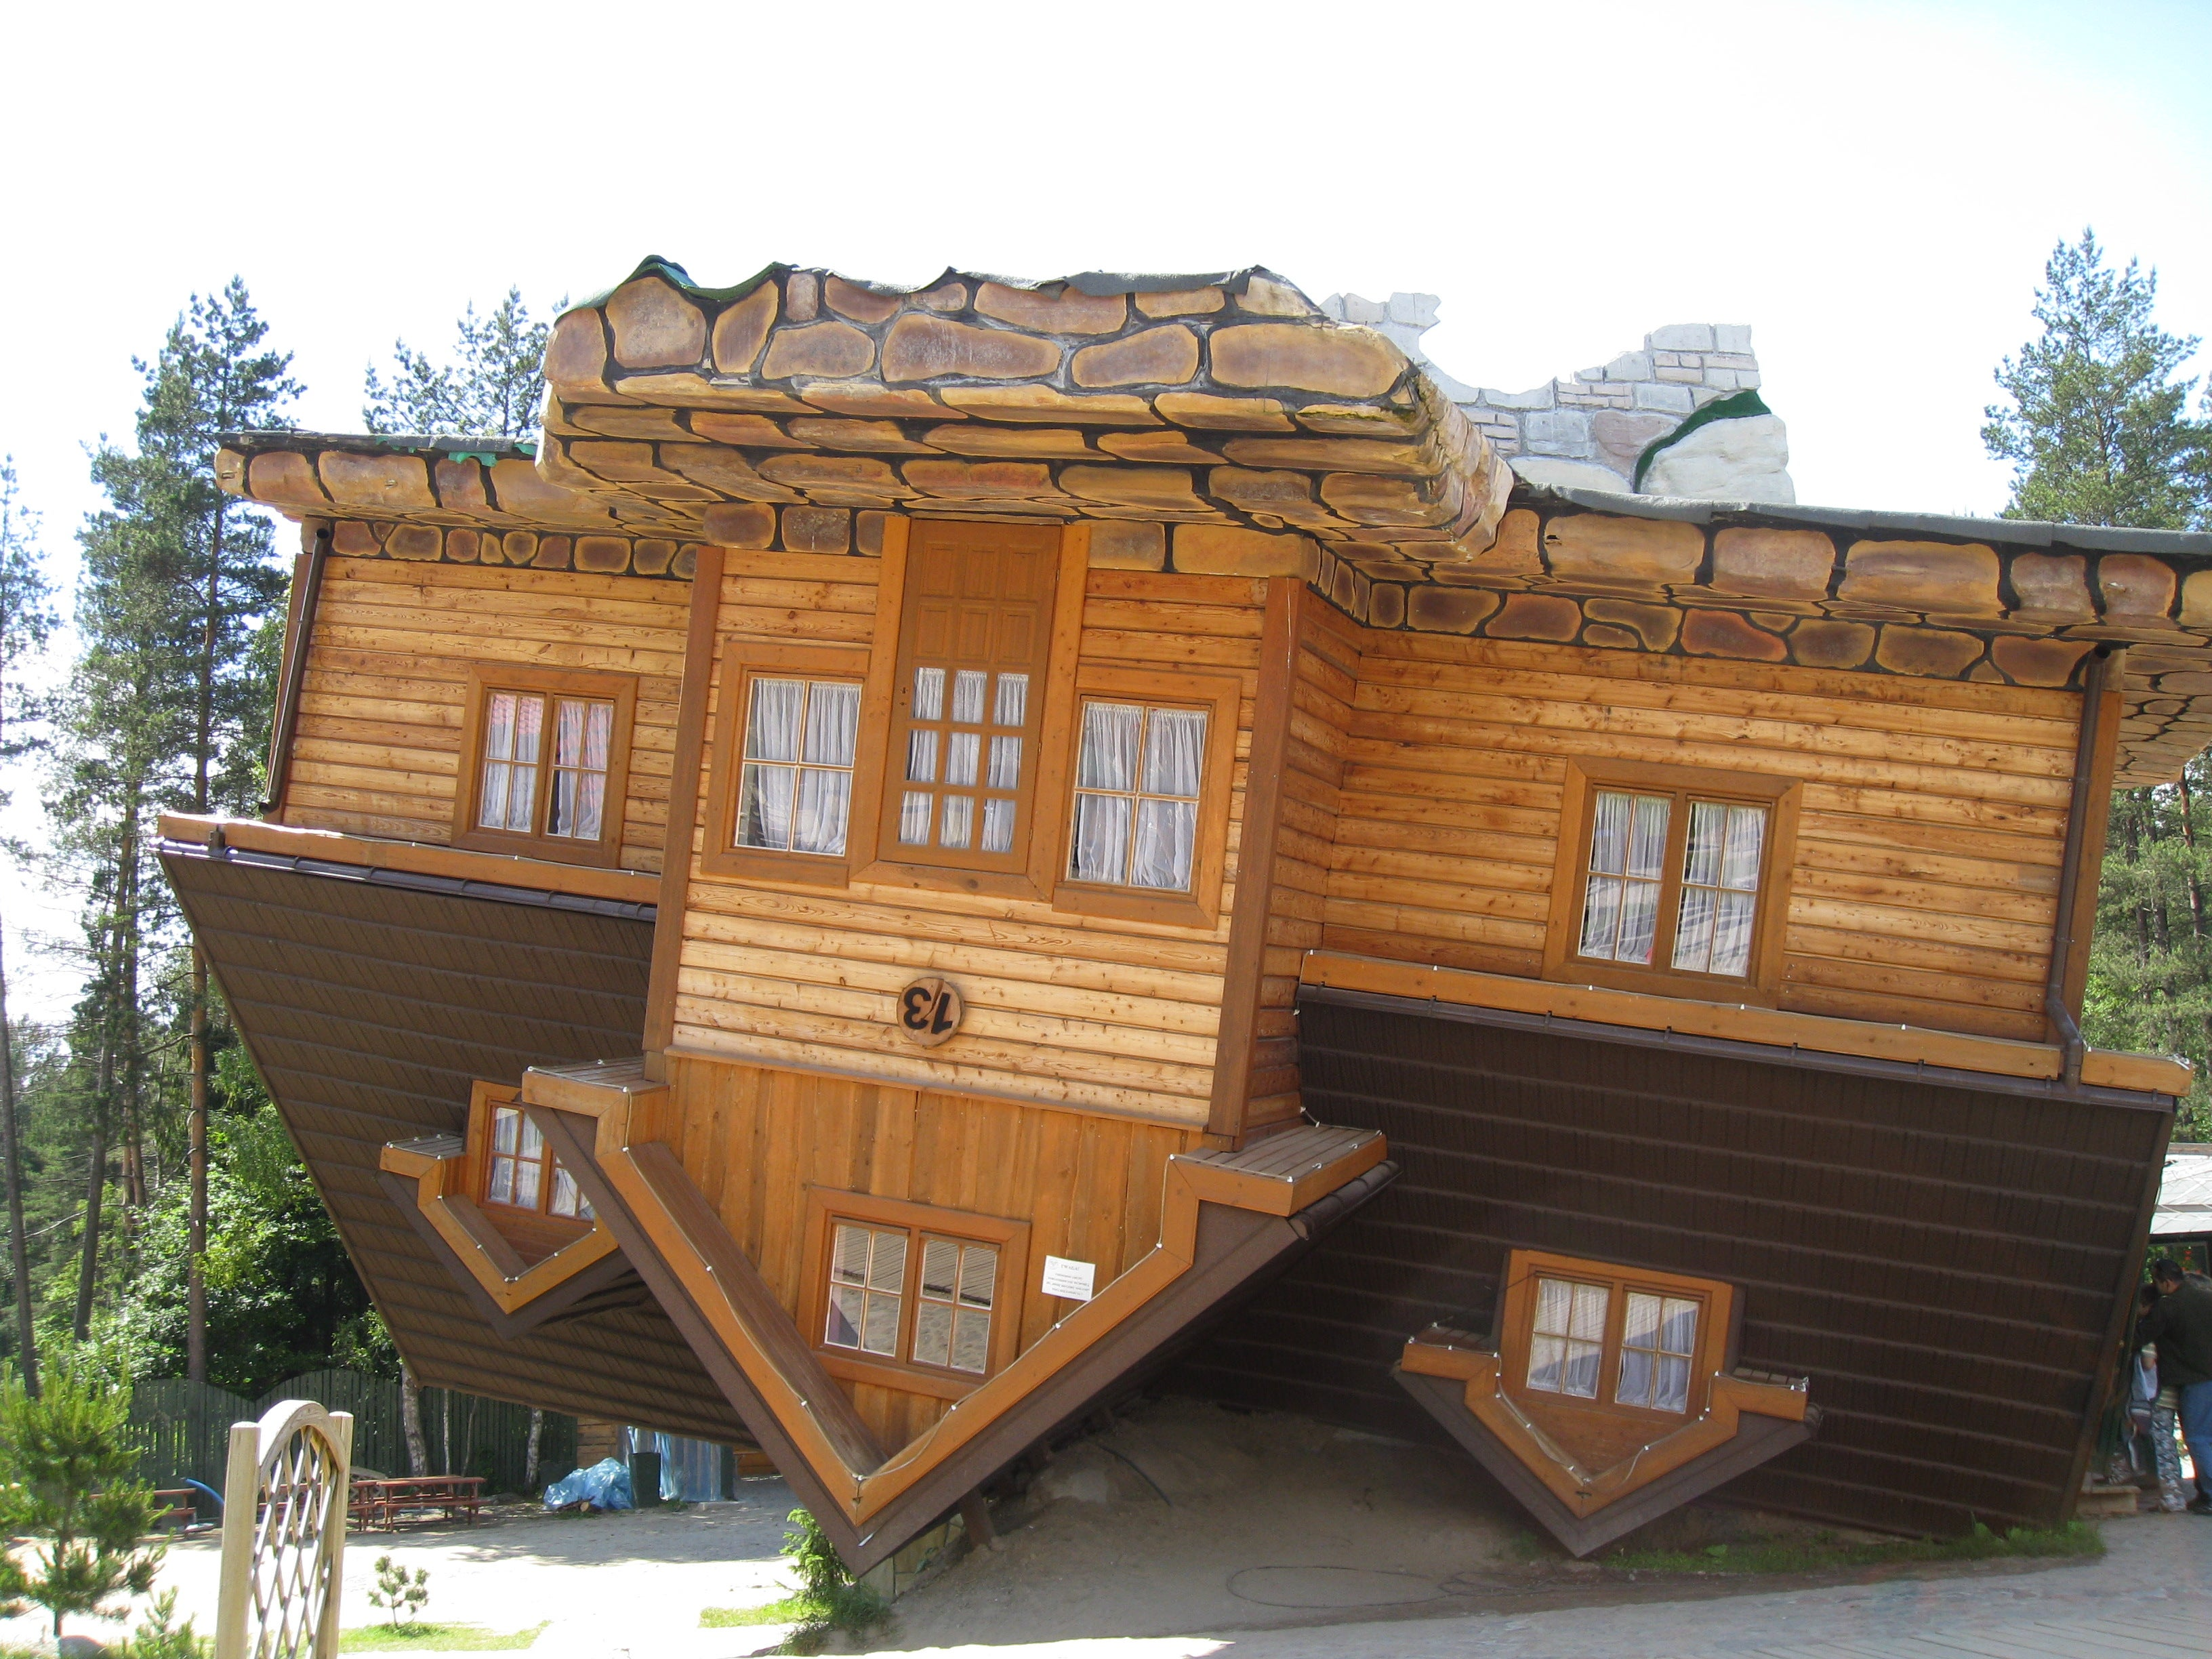 House face down in Szymbark